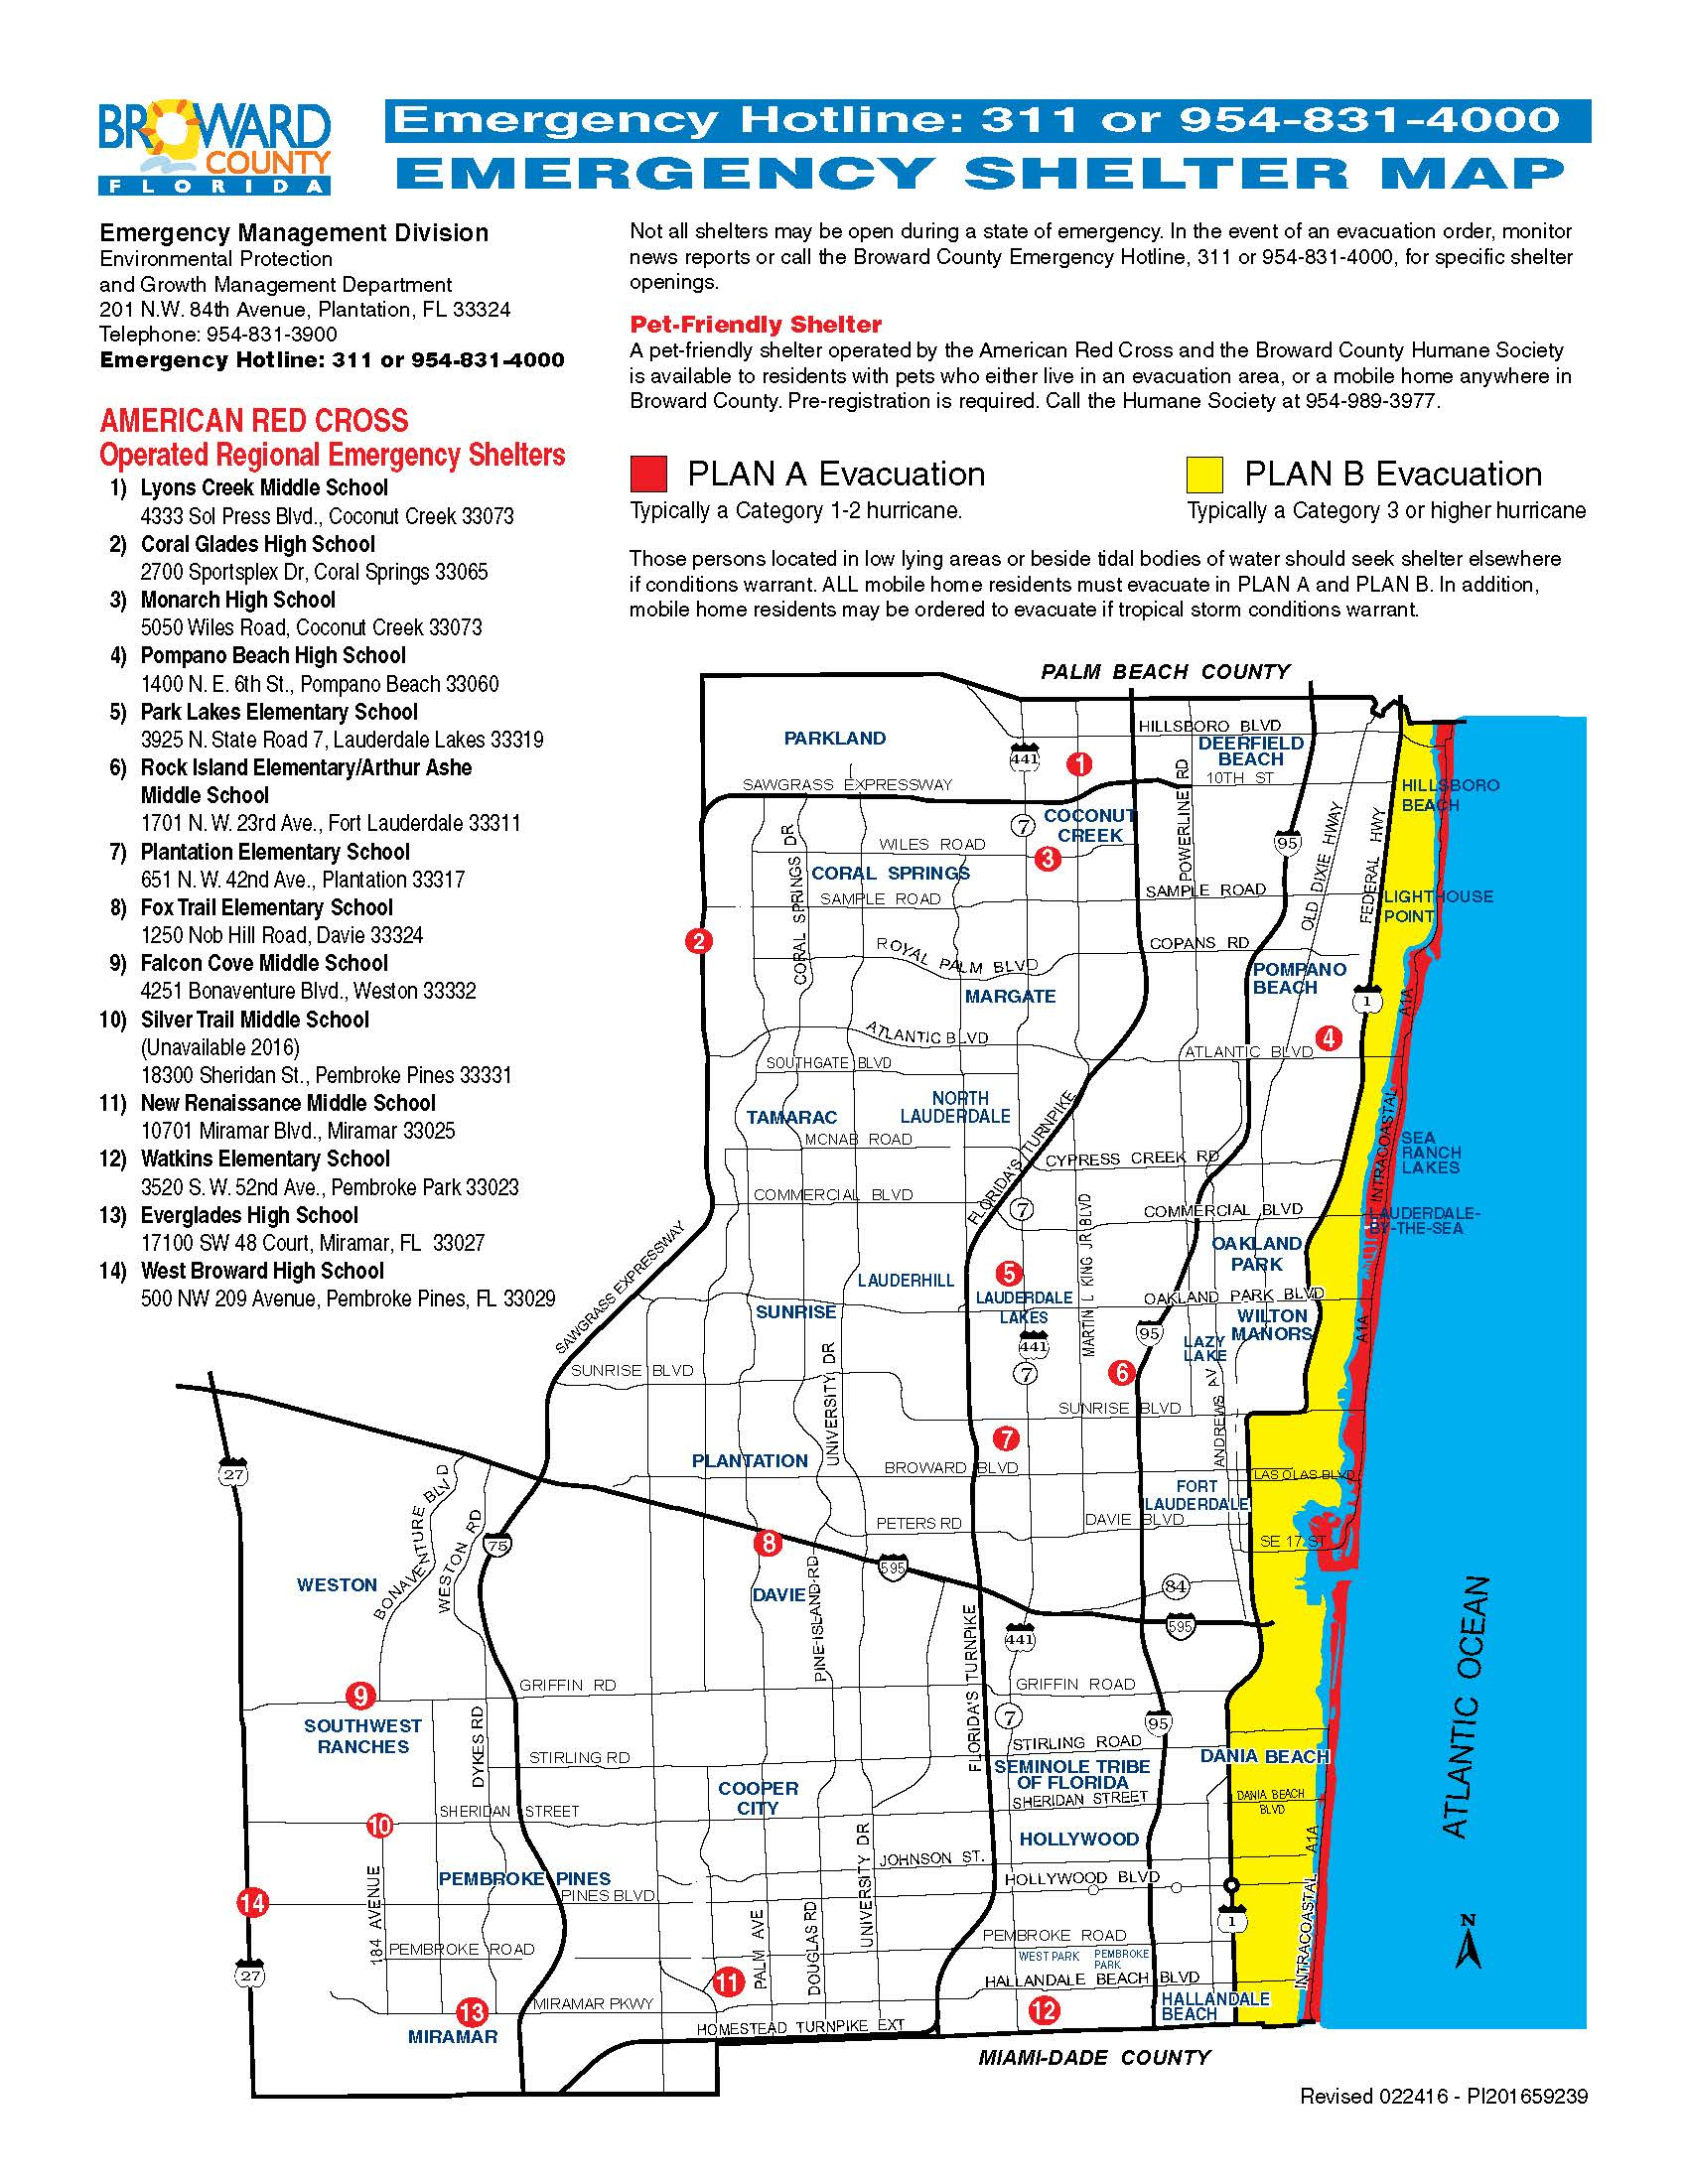 Emergency Shelter Map Broward County